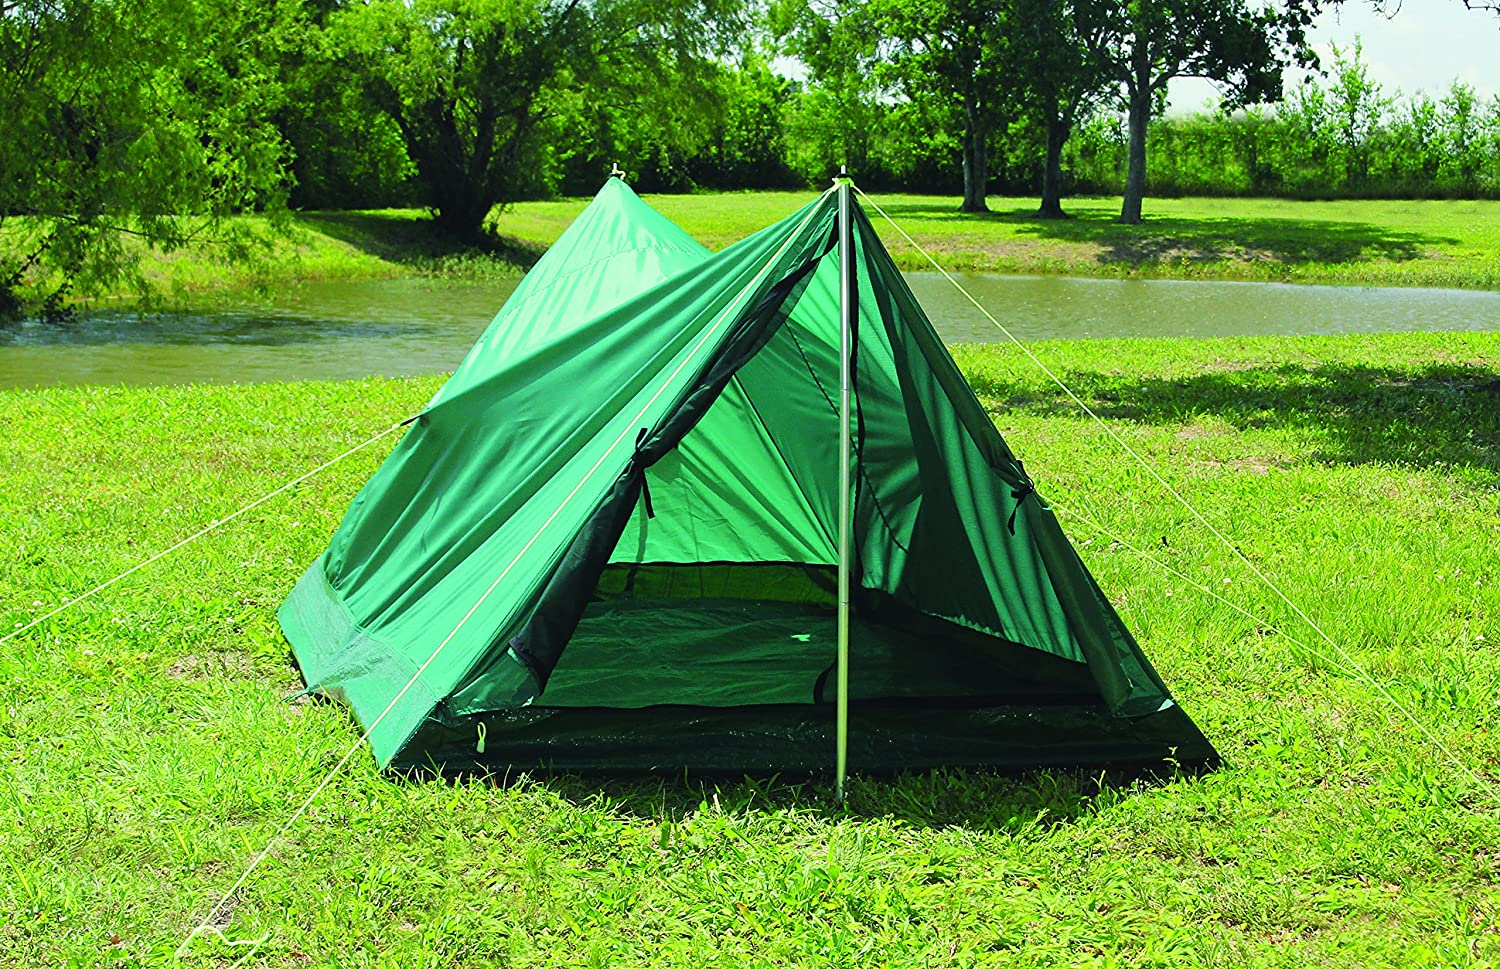 Pup Tent Meaning & Recruits Geraldine Kane And Edith Steward